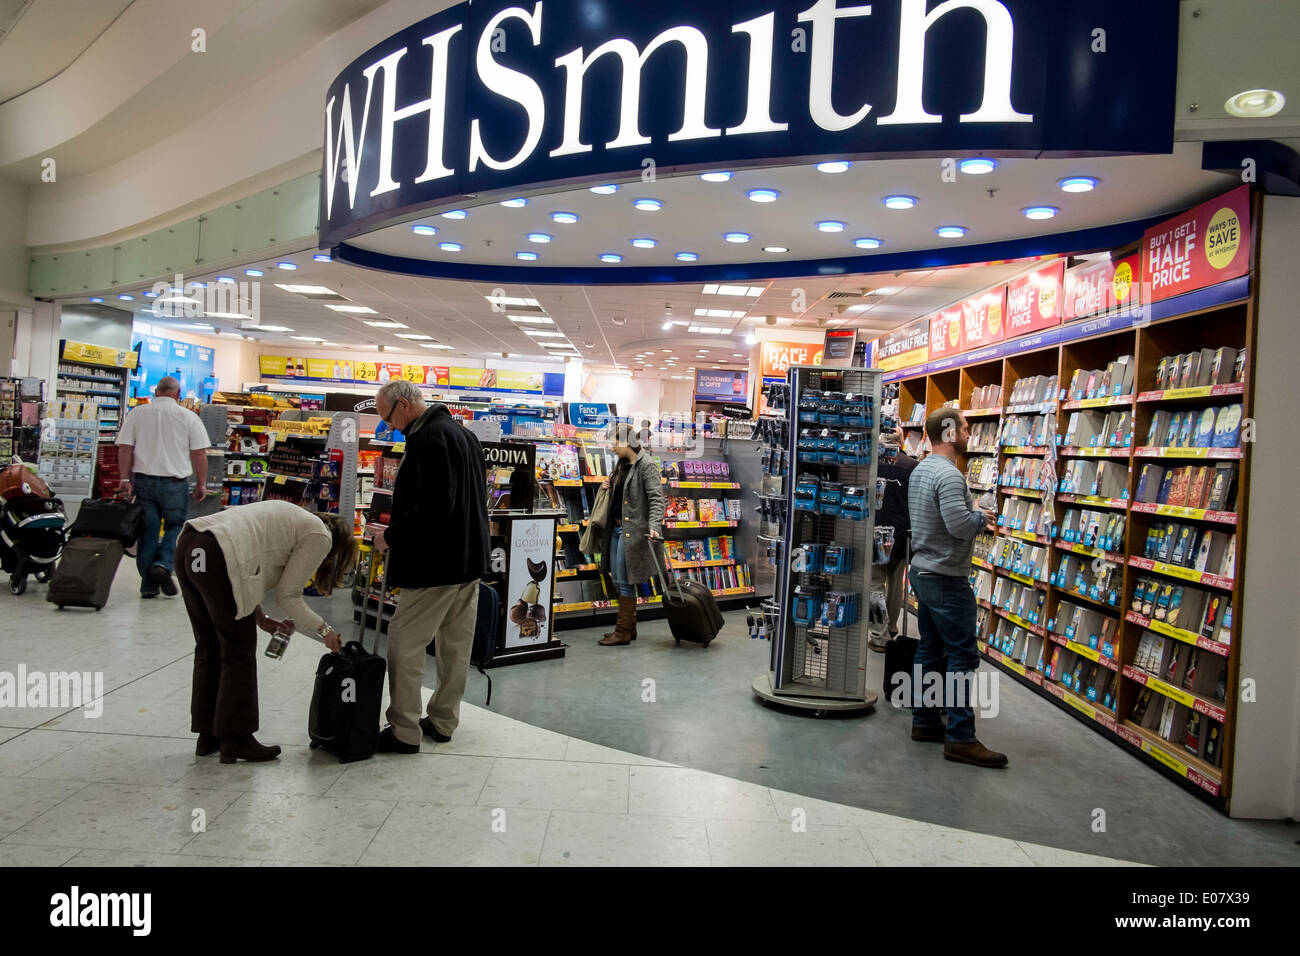 Duty Free shopping wh smith newsagent books read - Stock Image